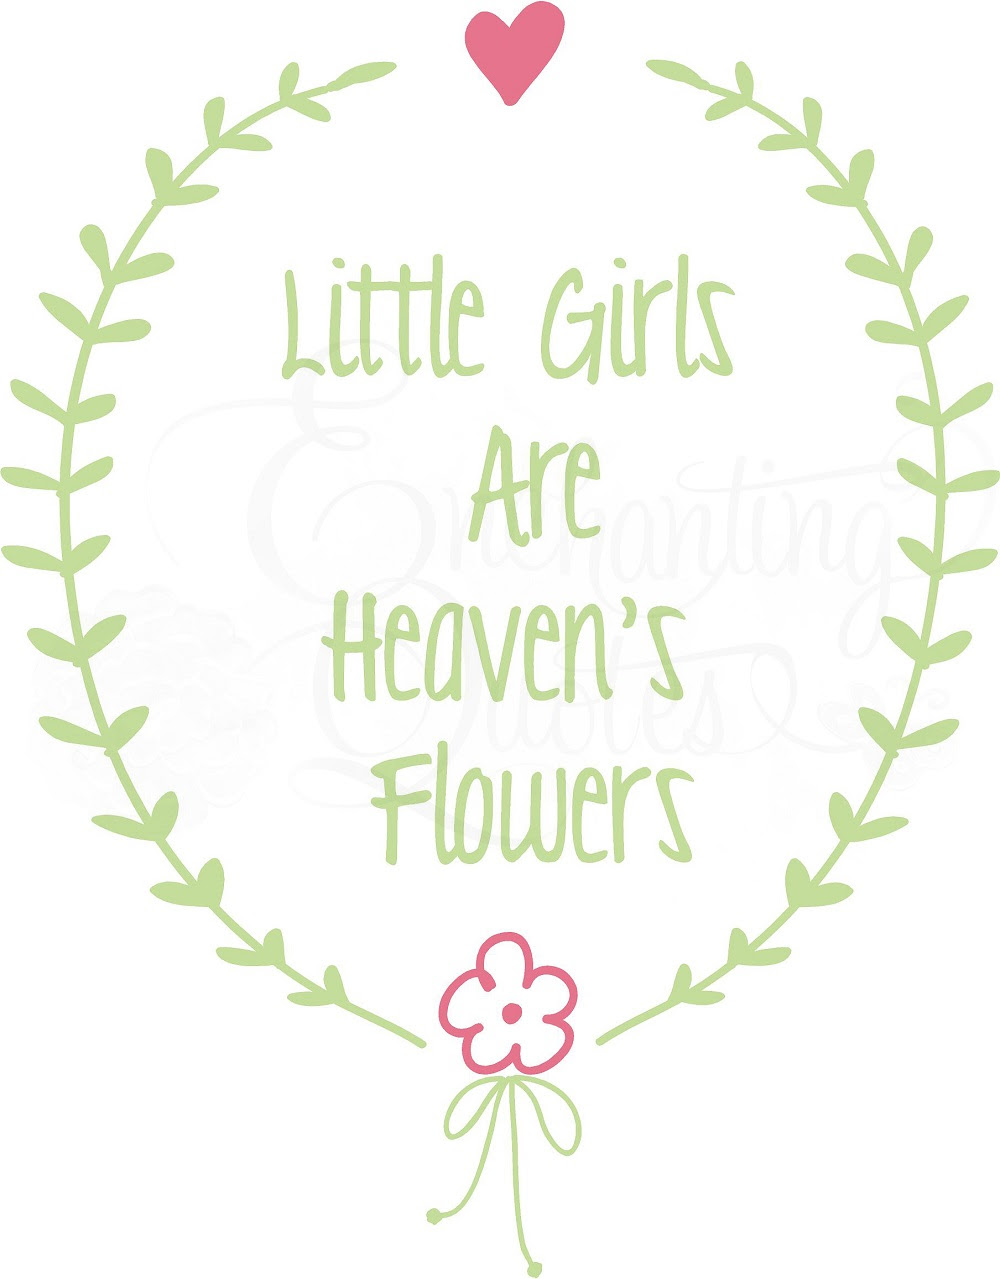 Inspirational Quotes For Little Girls - women empowerment quotes